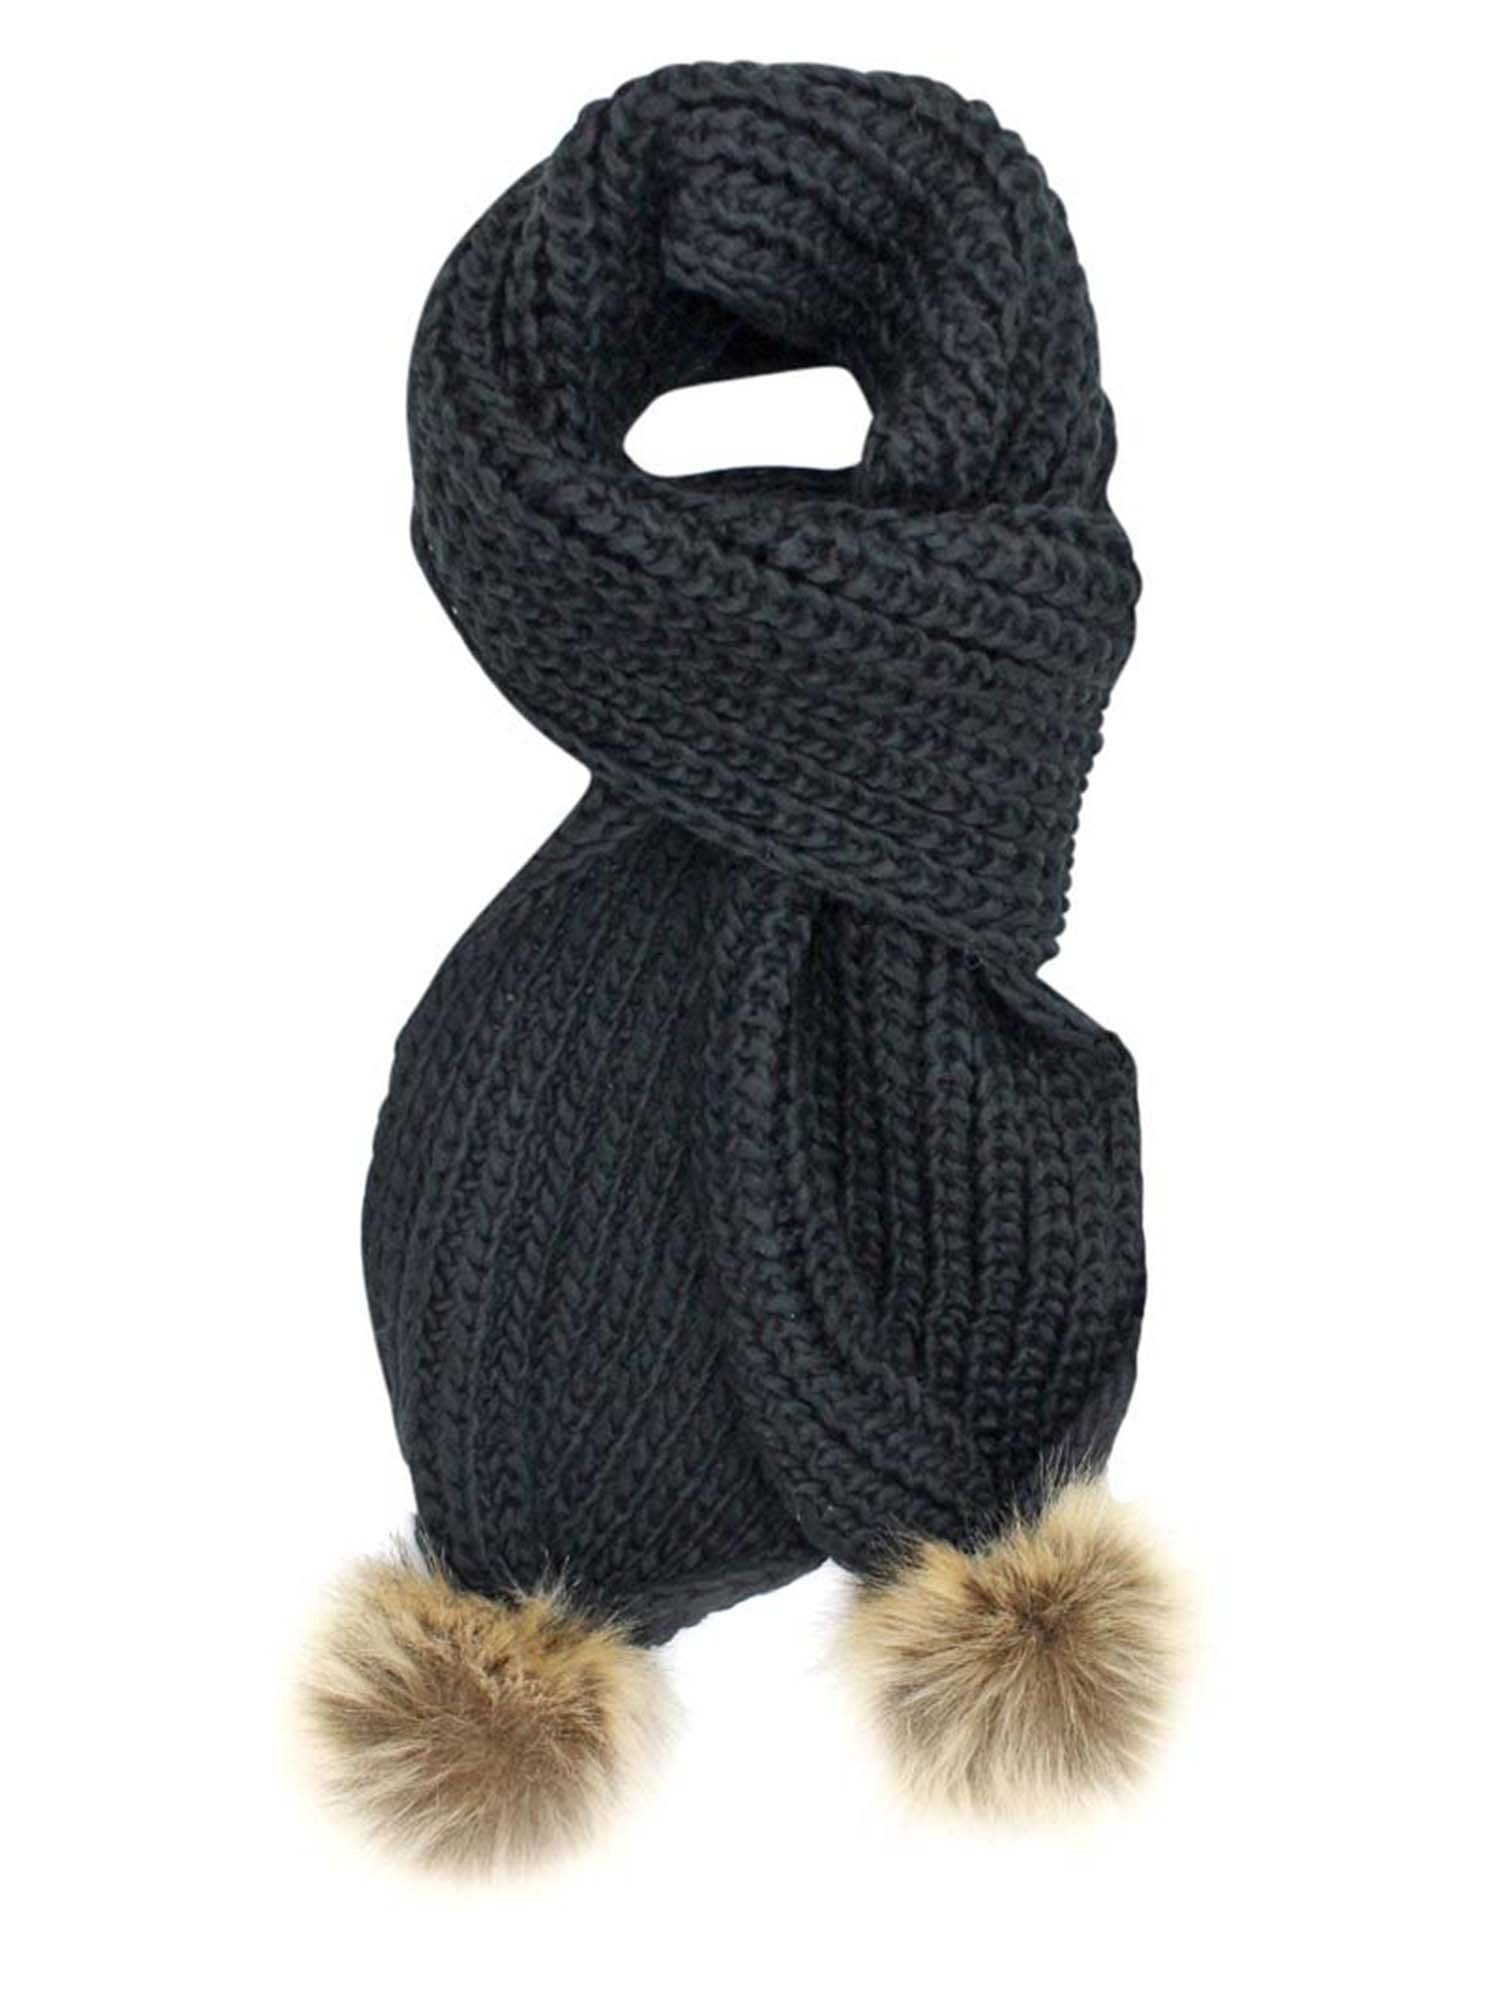 Grey Knitted Scarf With Faux Fur Pom-Pom Knitted Scarves